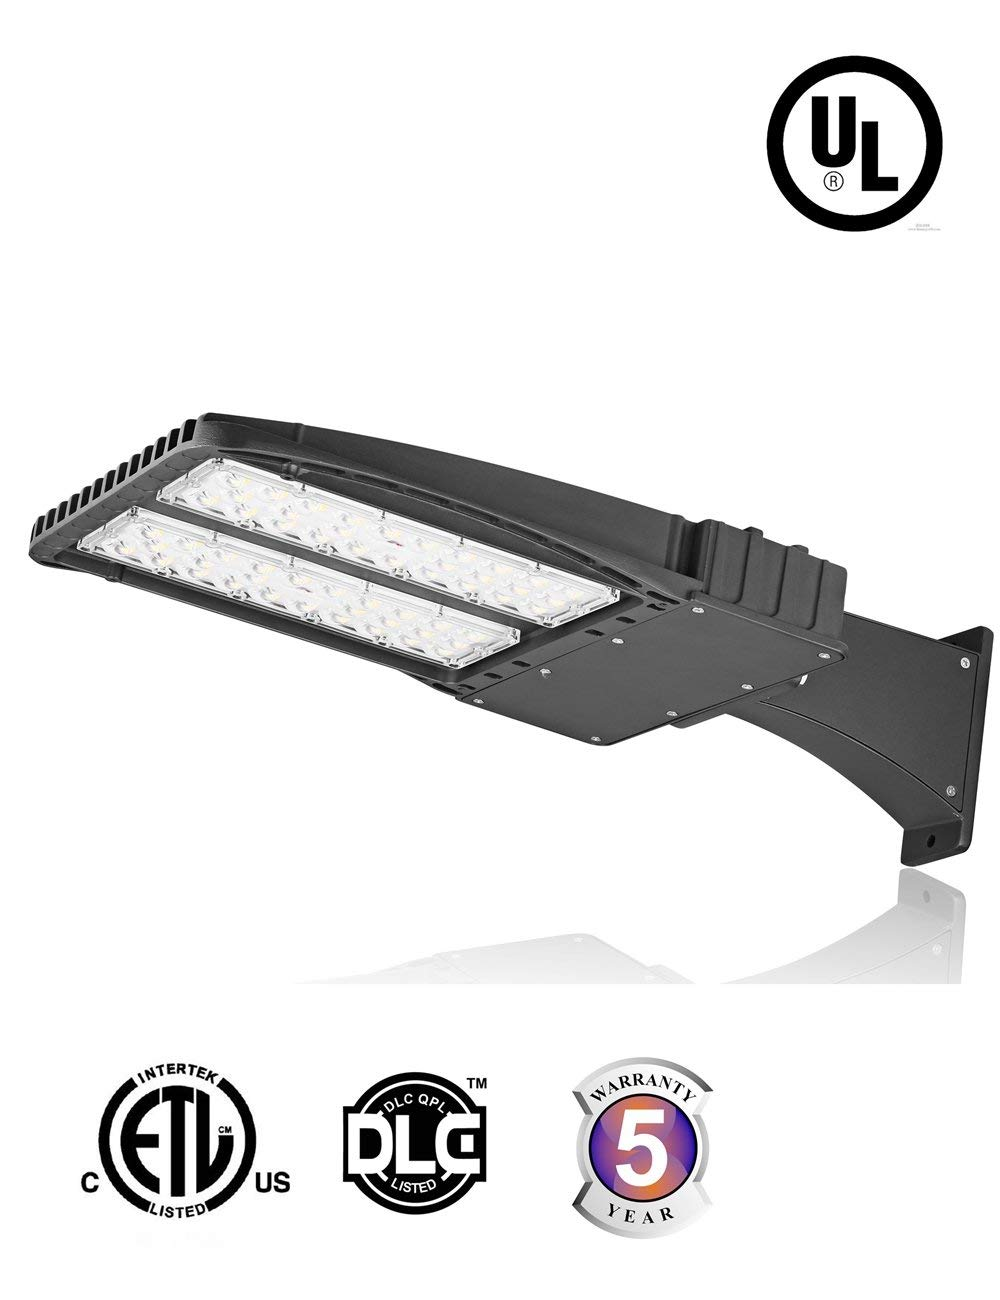 Docheer 200W LED Shoebox Pole Light Parking Lots Fixture Lighting, 24000 Lumens Outdoor Commercial Area Road Light Pathway Lamp,100-277VAC,Daylight White 5300K (Arm Mount)